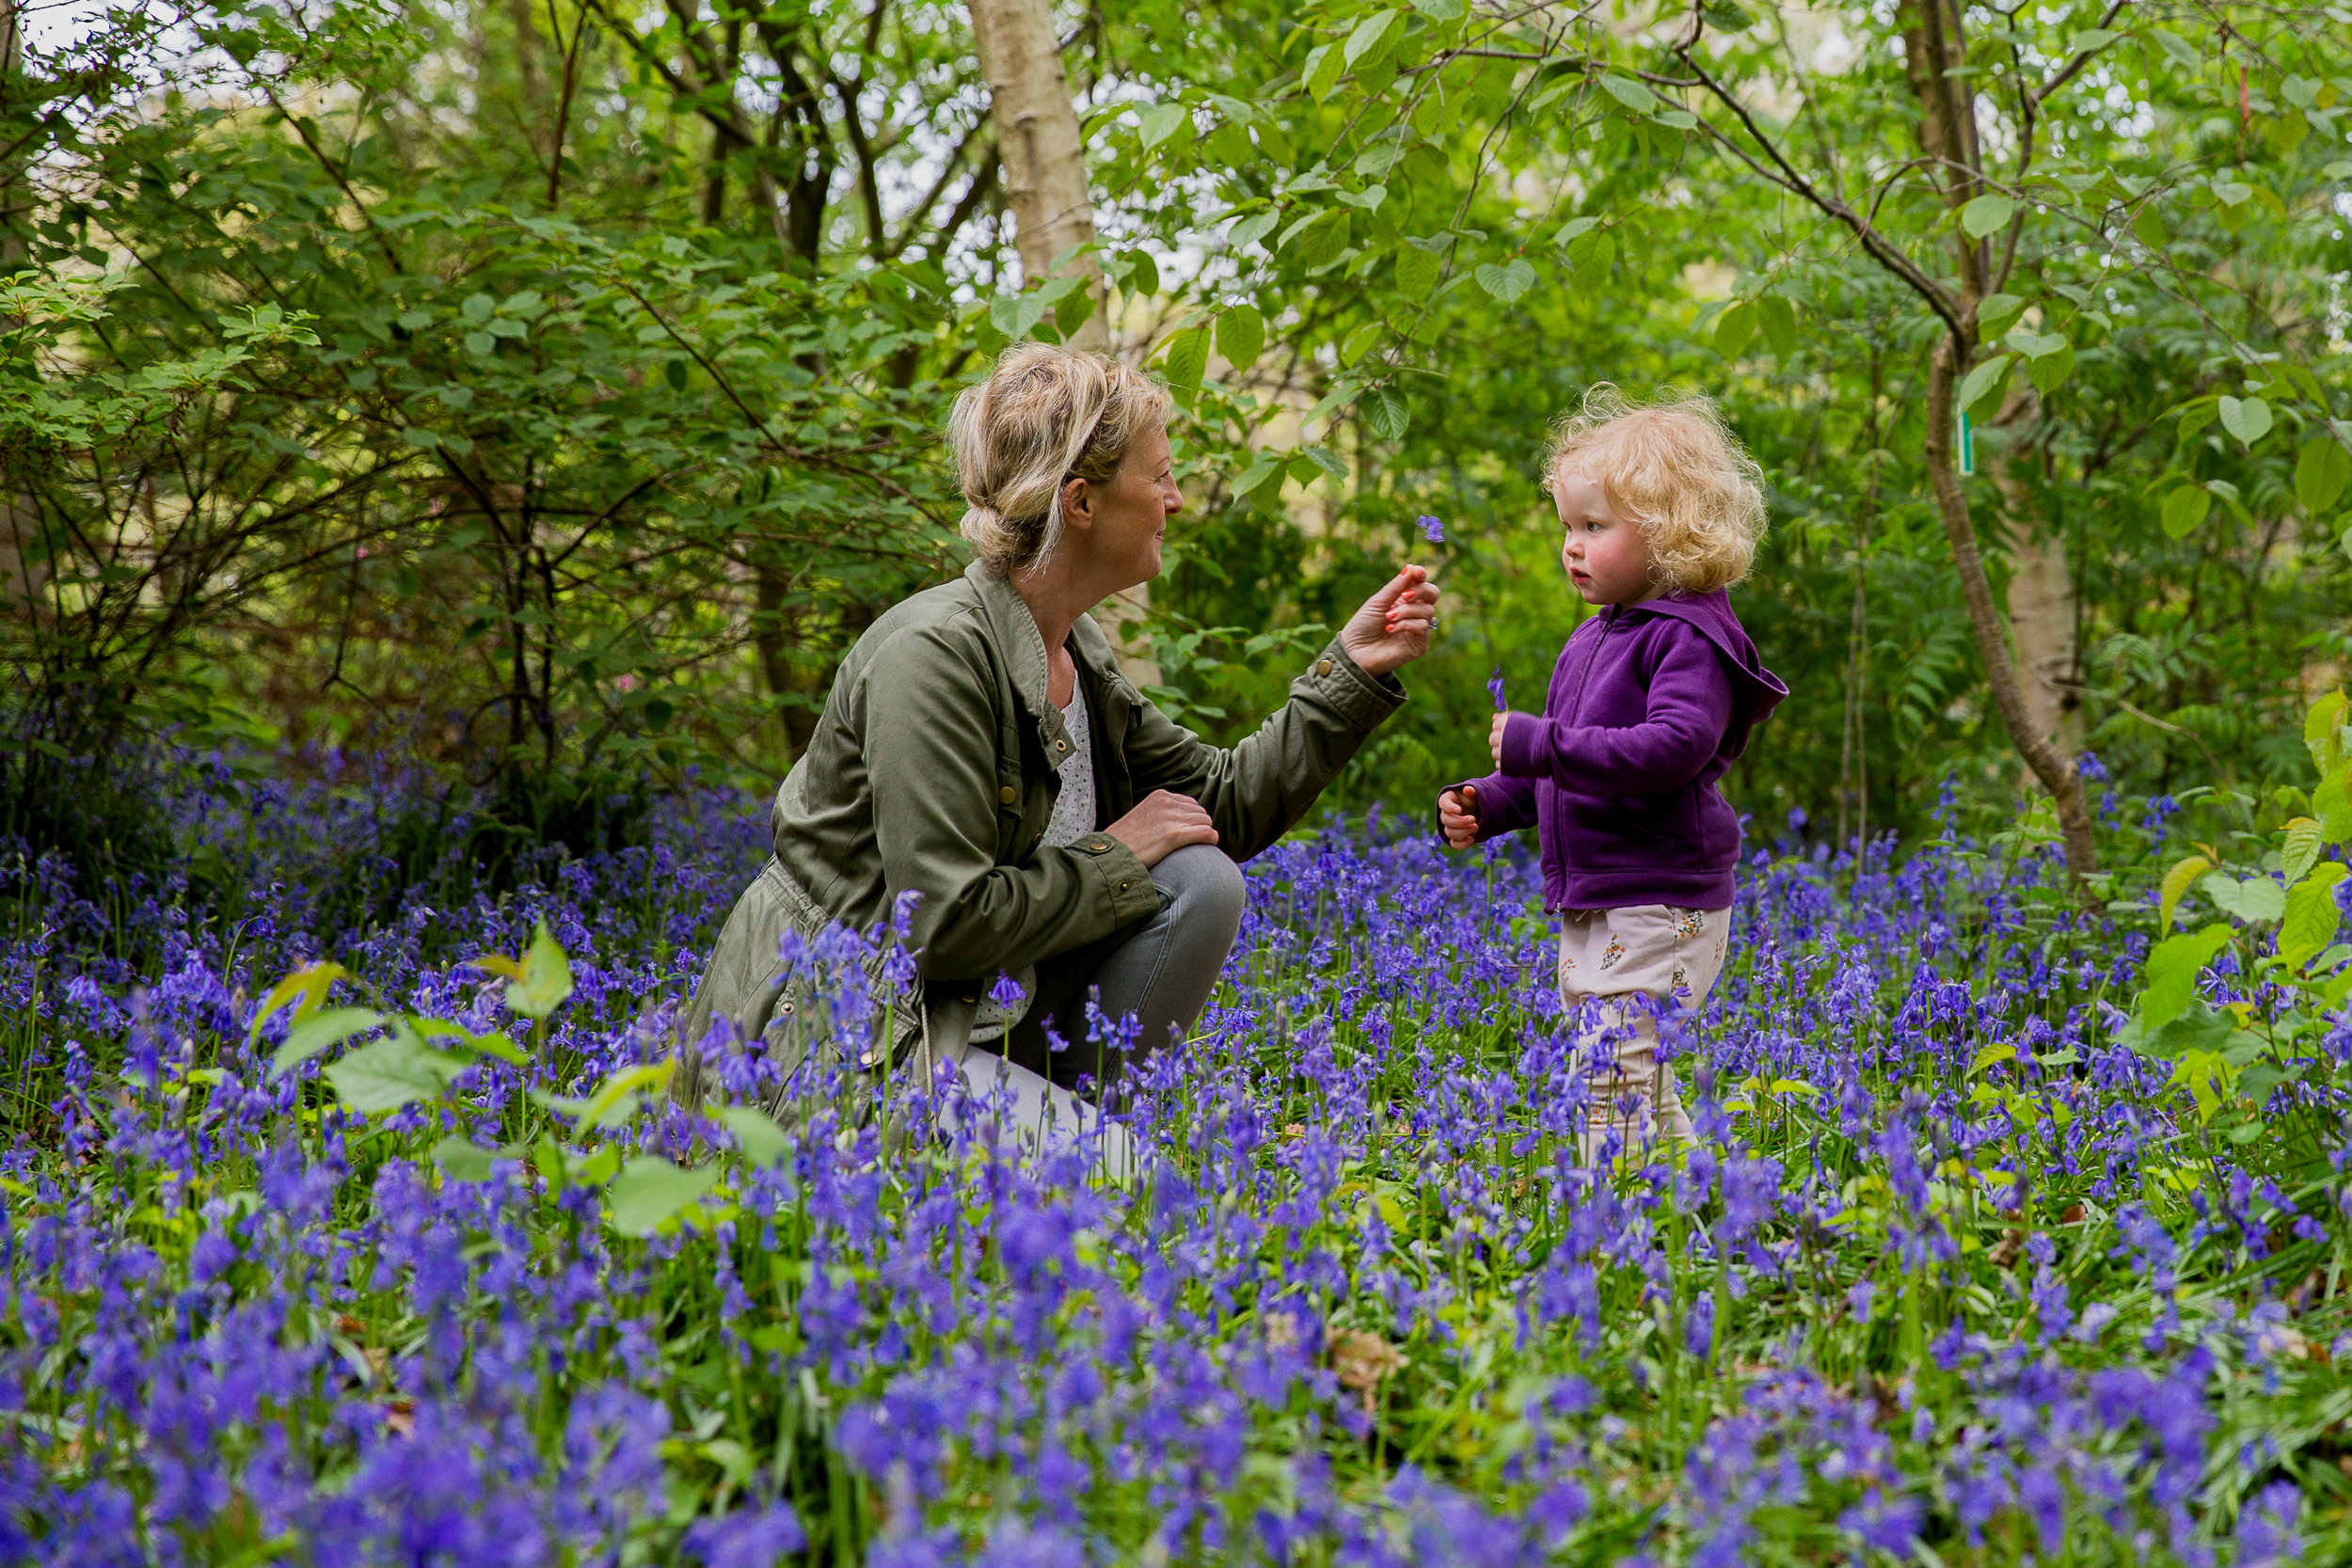 Mum and daughter in bluebells